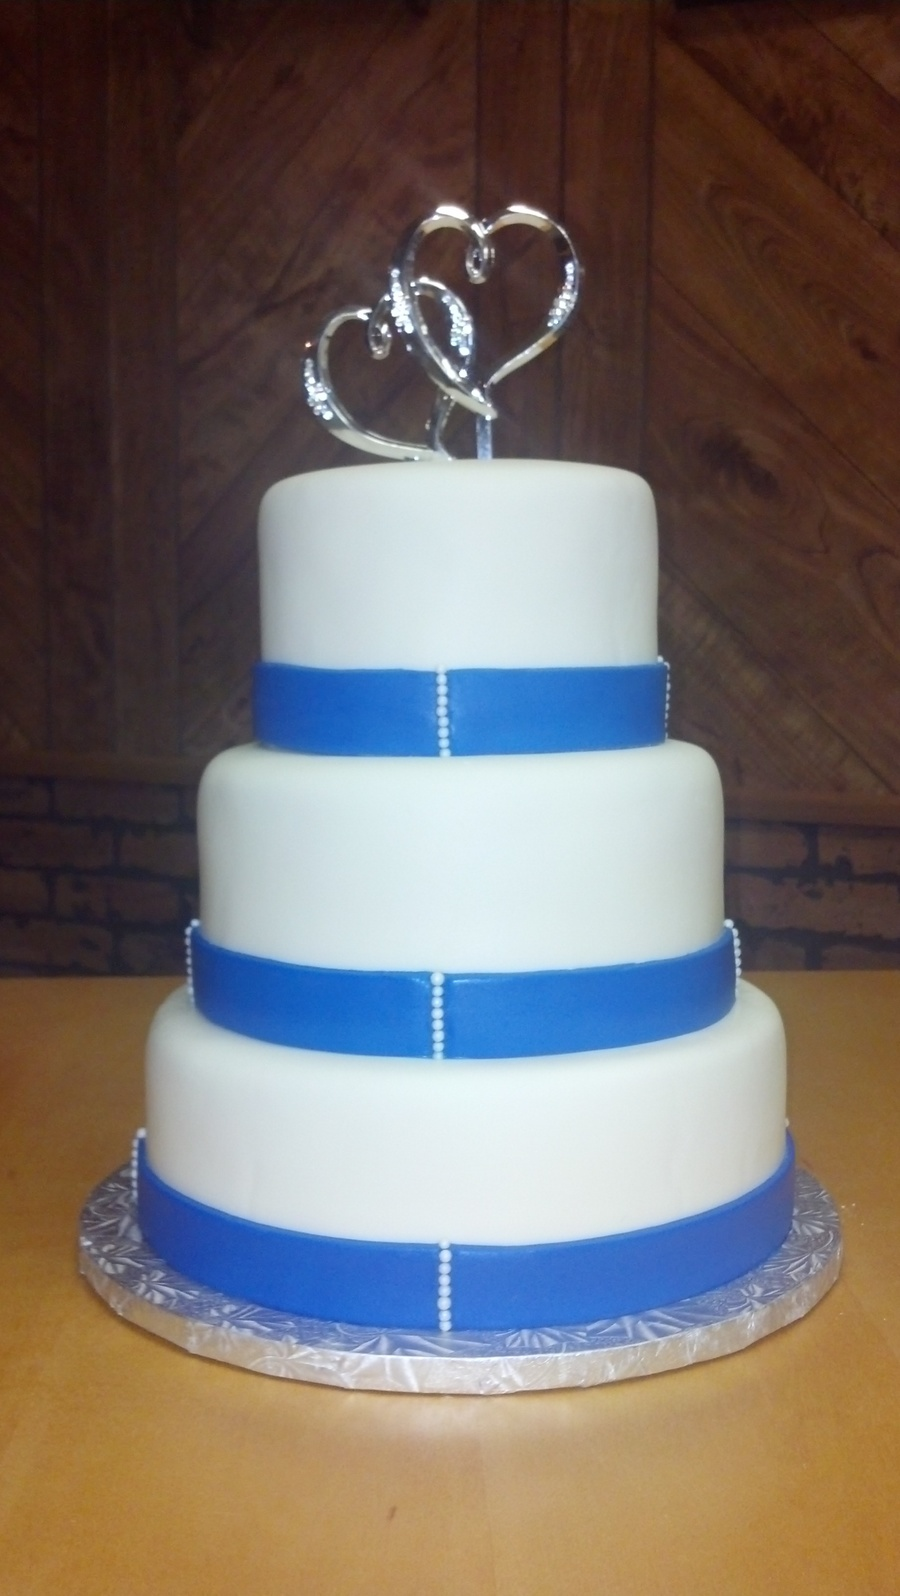 Simple Amp Elegant Wedding Cake By Pamcakes on Cake Central